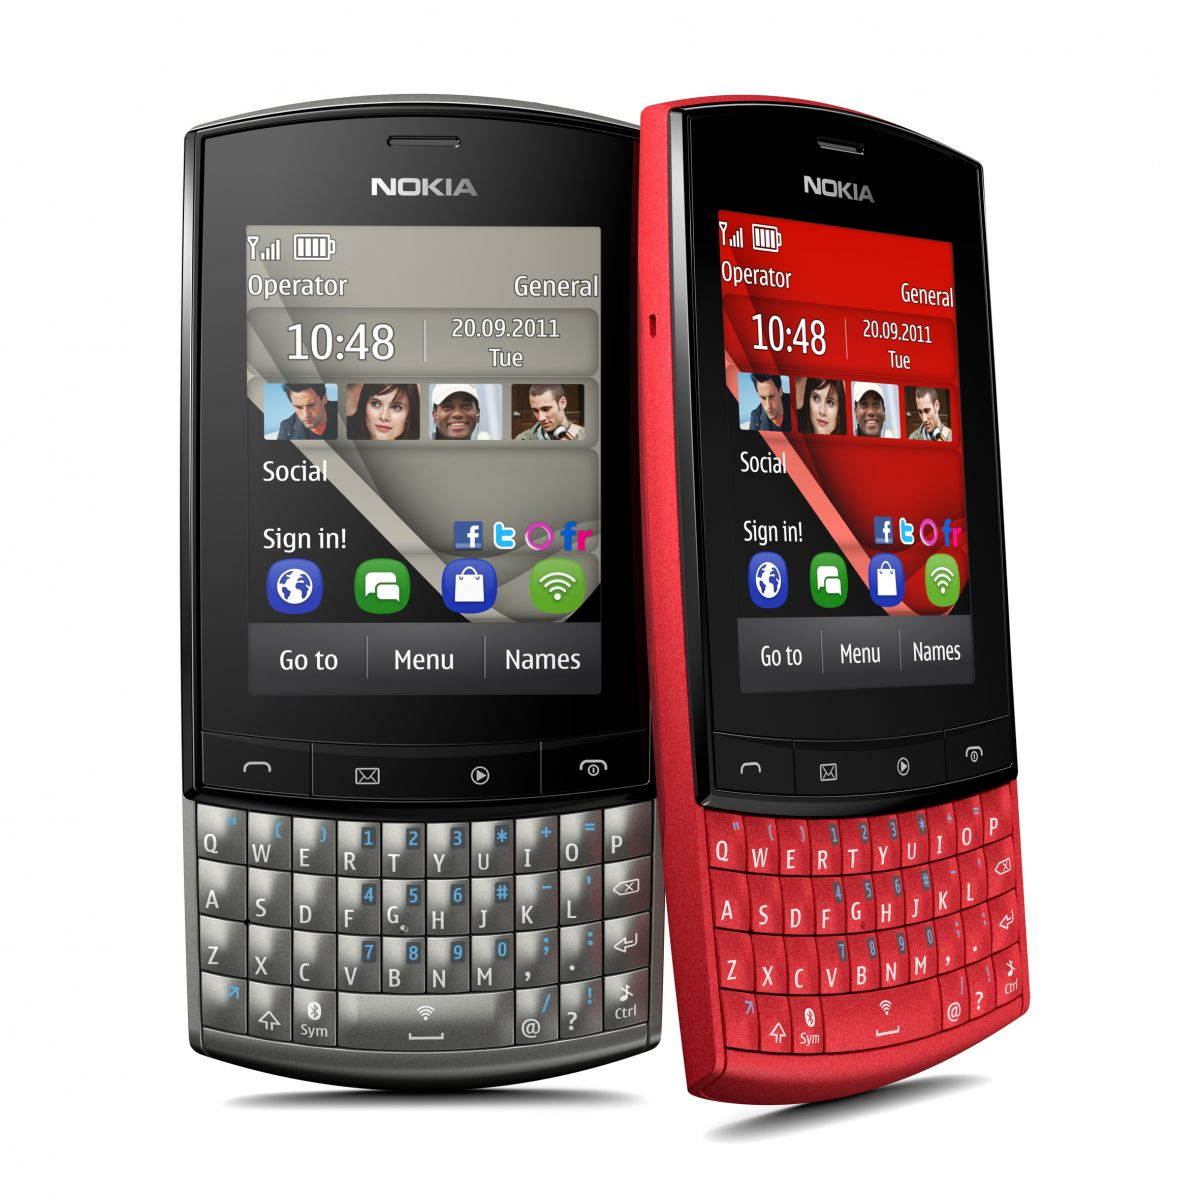 Nokia's Asha 303 device (click image for a larger version)